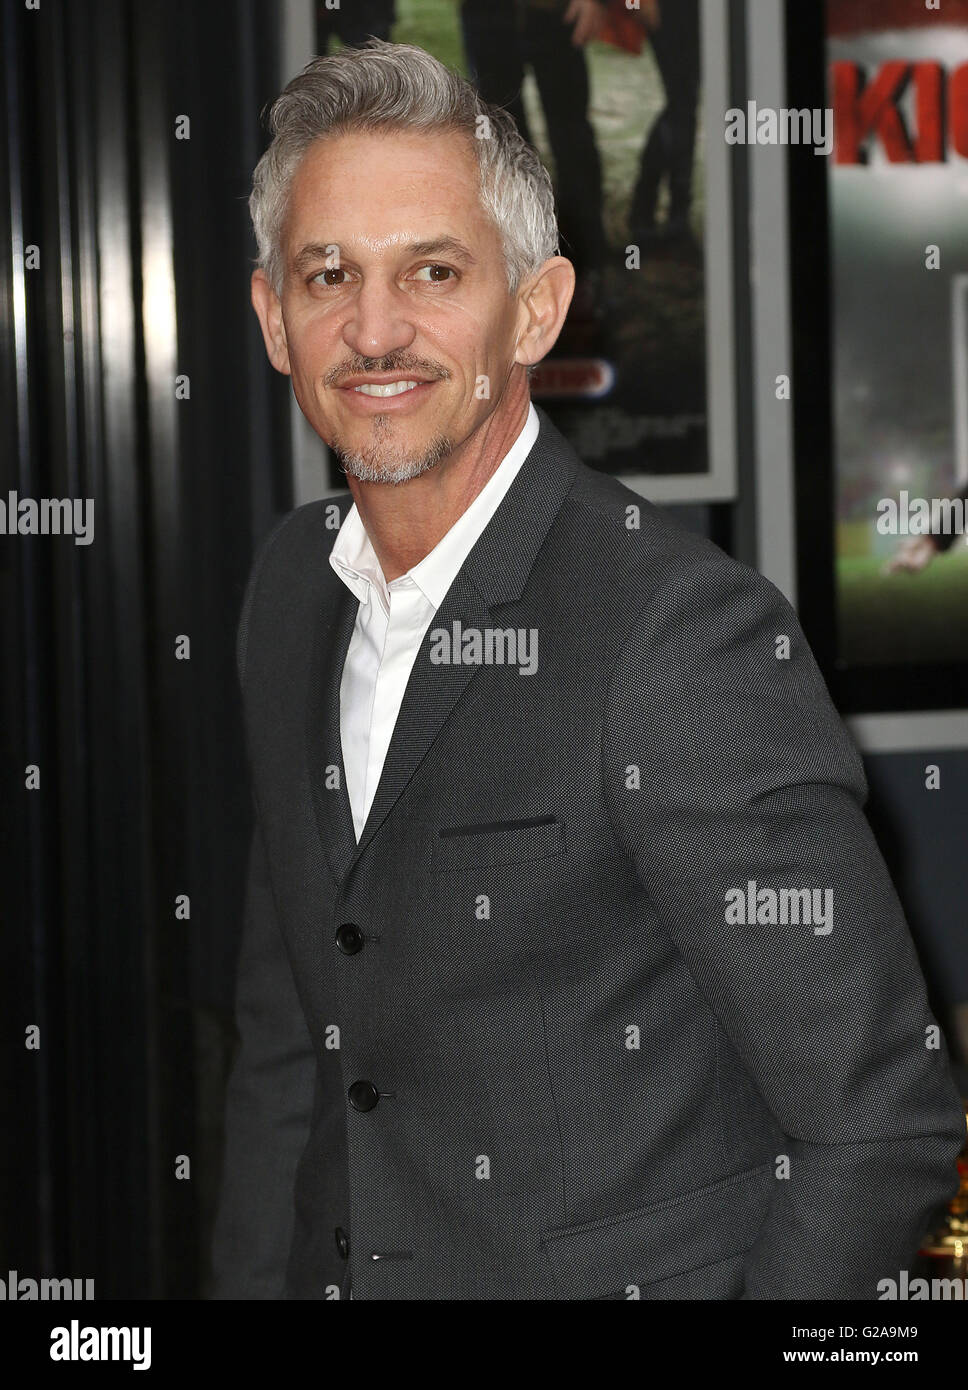 April 21, 2016 - Gary Lineker attending UK Premiere of Kicking Off, Prince Charles Cinema, Leicester Square in London, - Stock Image